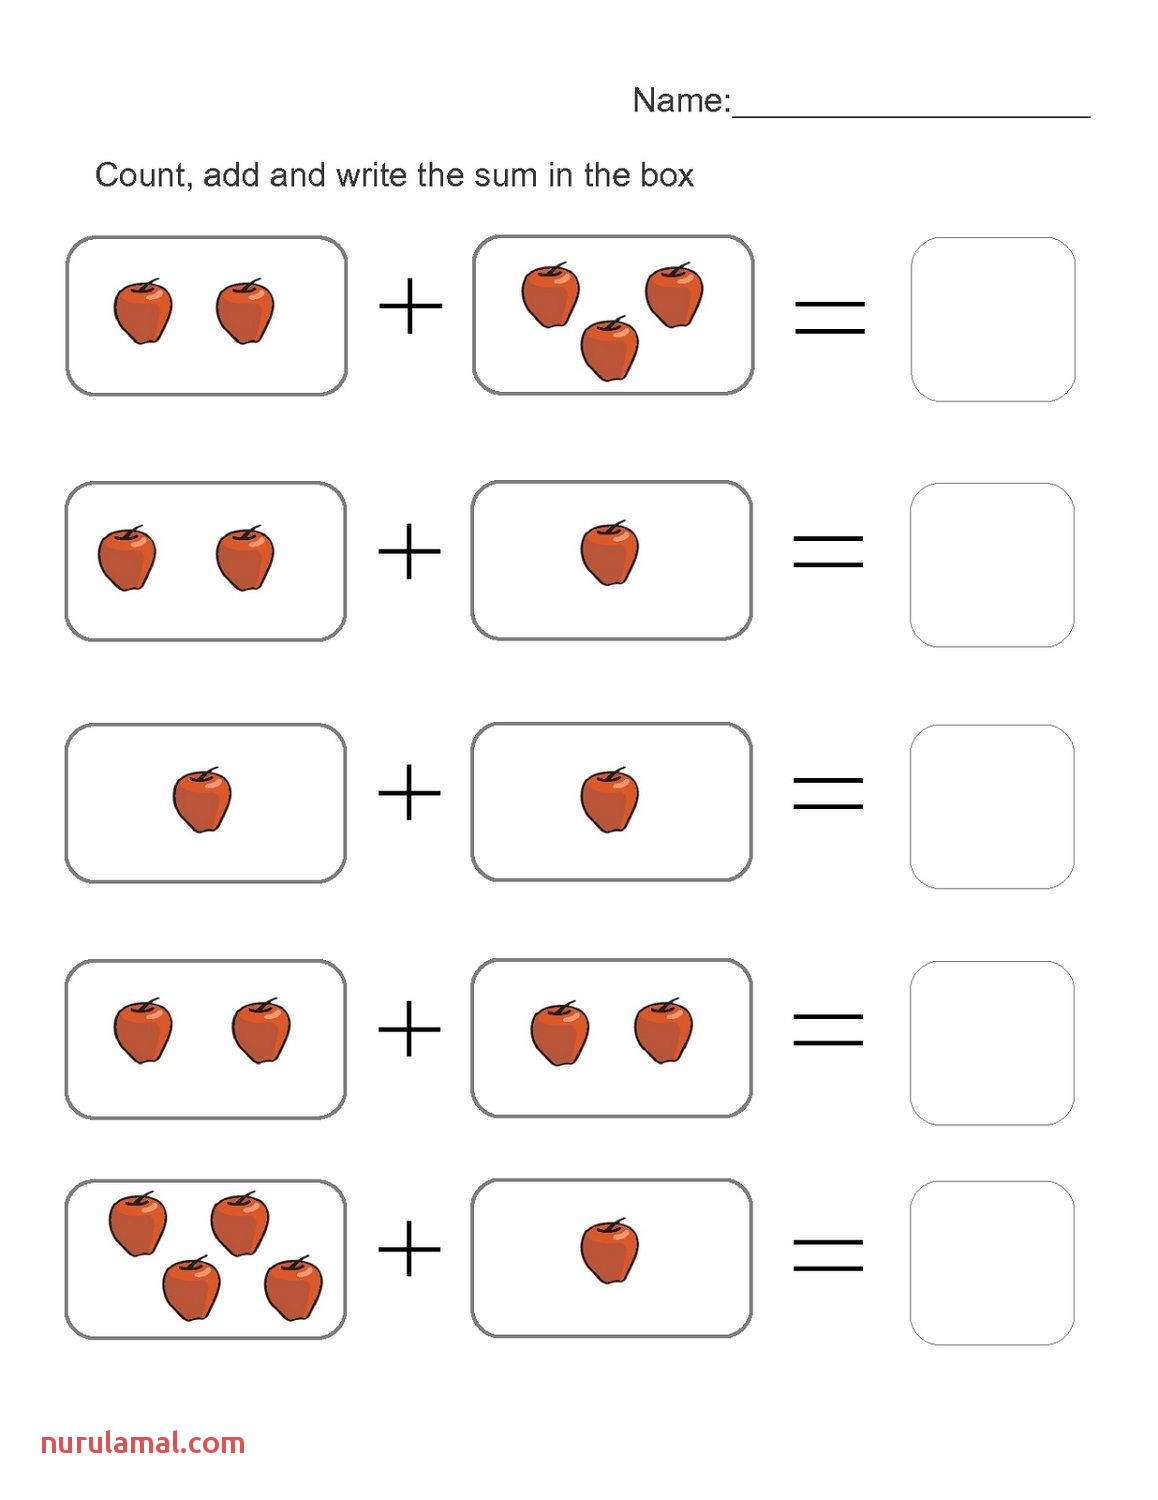 4 Year Old Worksheets Kids Learning Activity